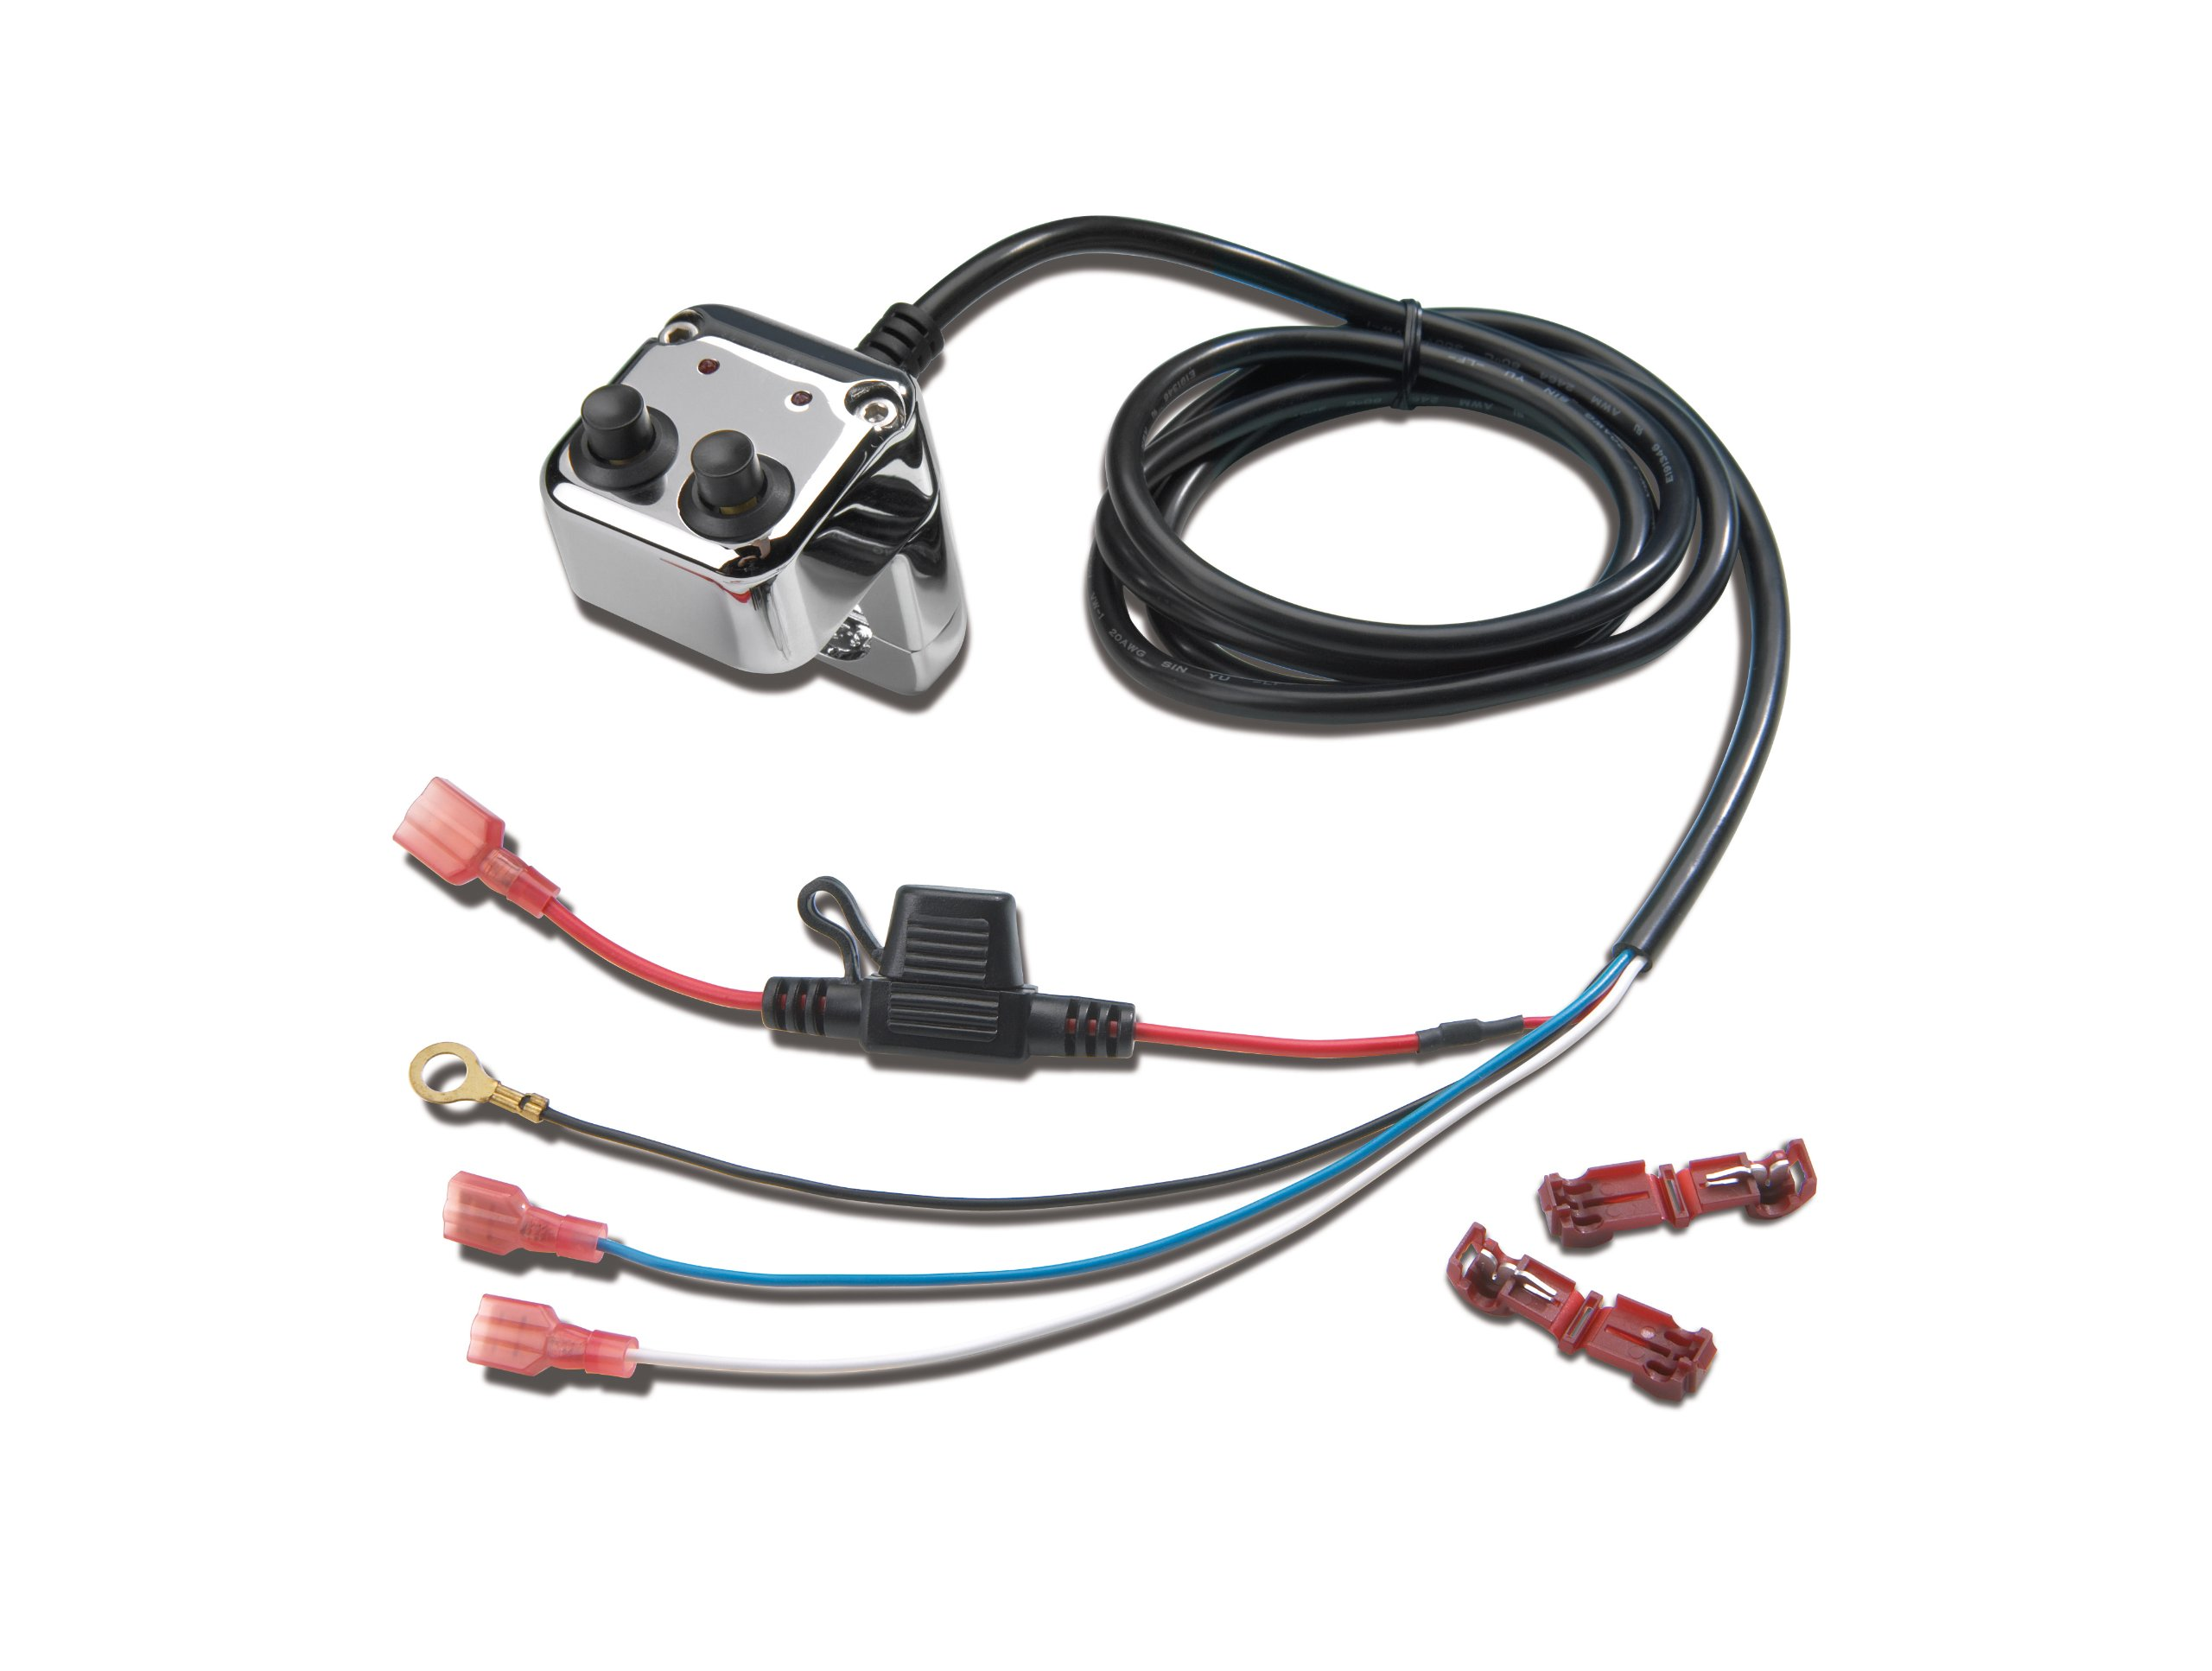 Show Chrome Accessories 13-207 Accessory Switch Block by Show Chrome Accessories (Image #1)